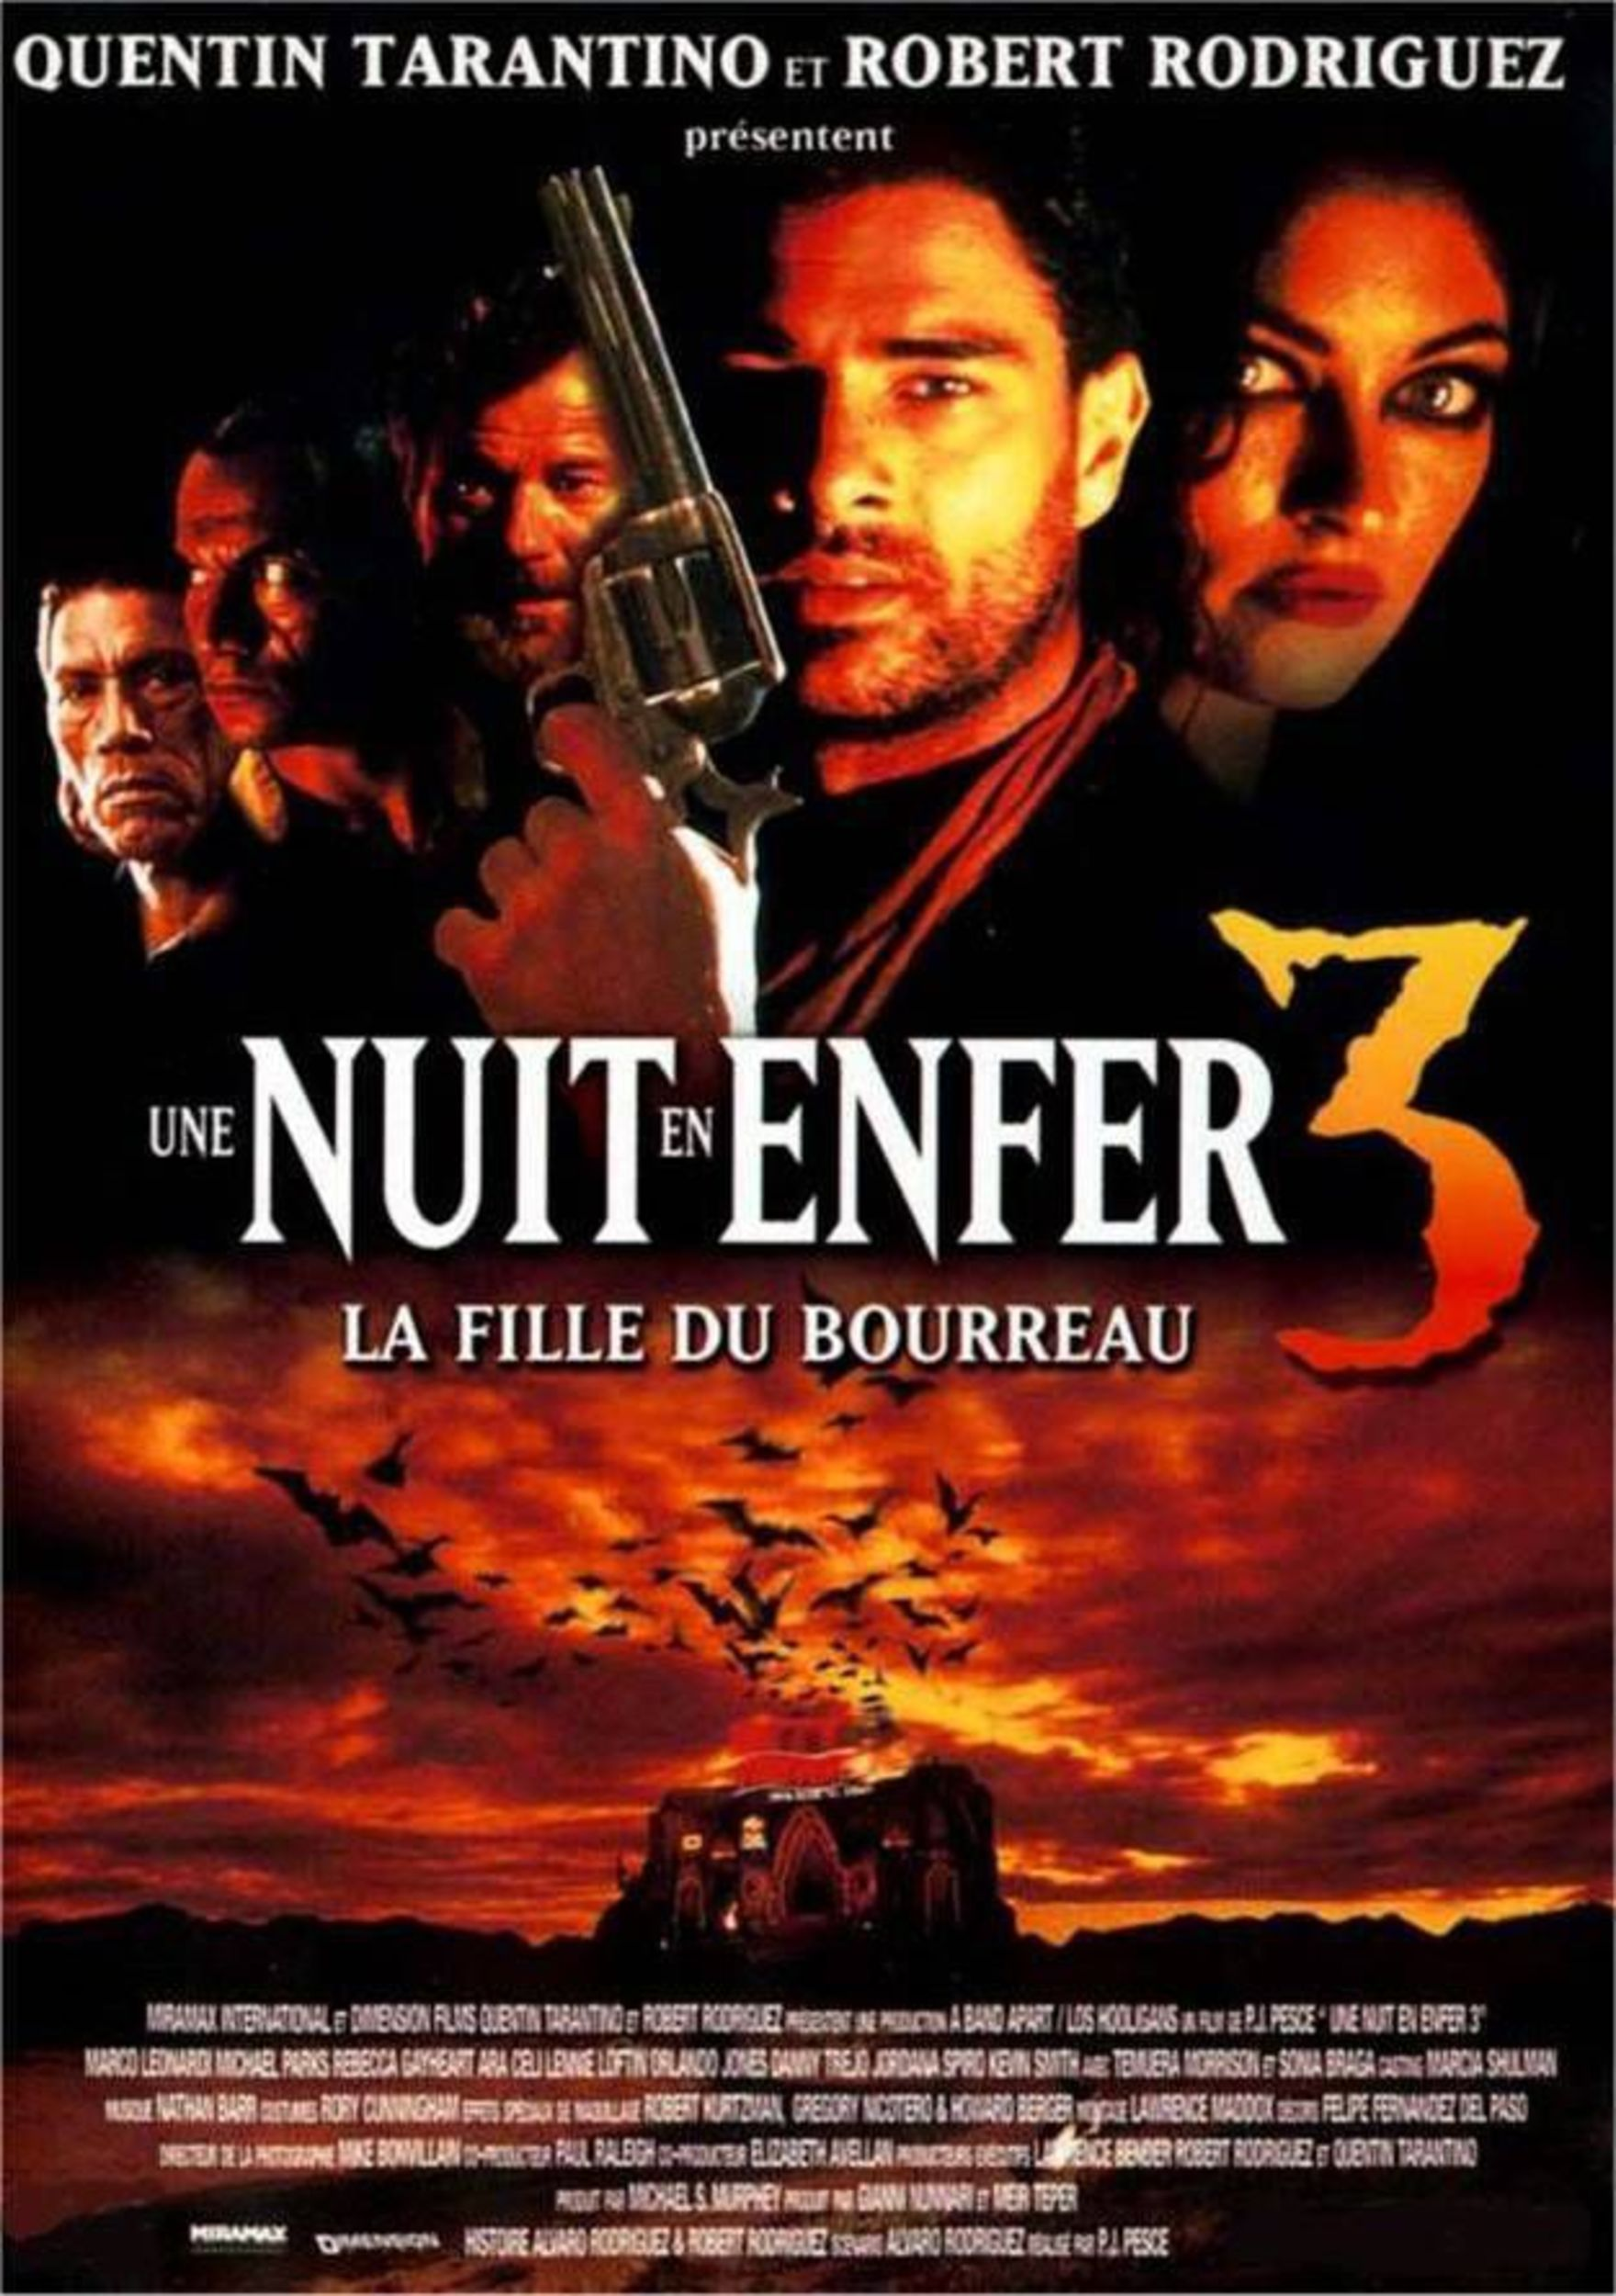 Affiche Poster nuit enfer 3 fille bourreau dusk dawn hangman daughter disney dimension